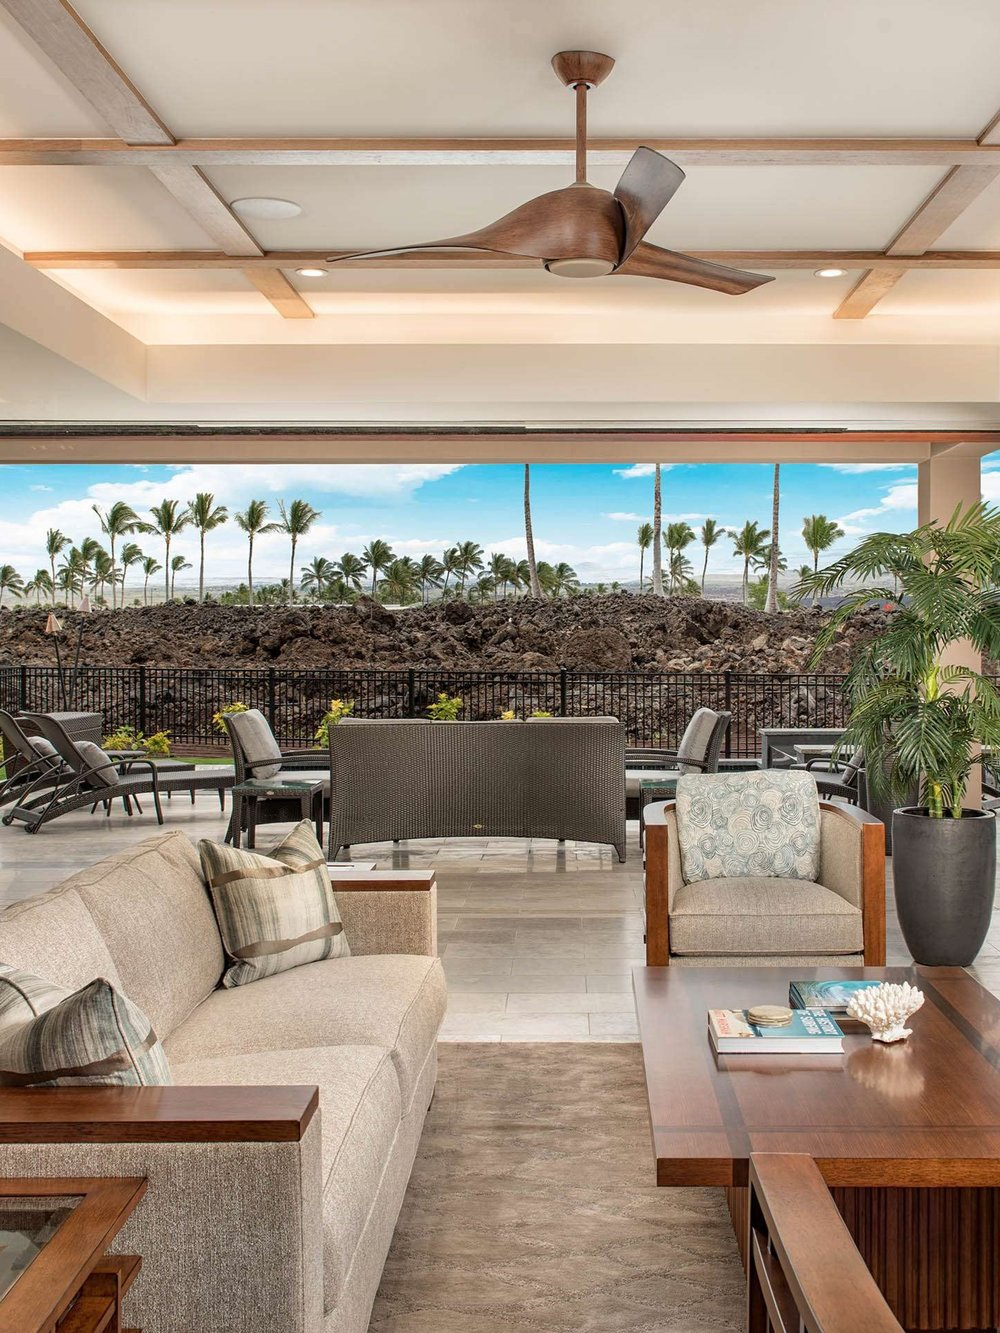 ''Wonderful, wonderful, wonderful! One of the best trips we've ever taken! Loved the house and the location. Thank you for arranging this!'' - D.P.    - Kohala Coast Residence, Hawaii